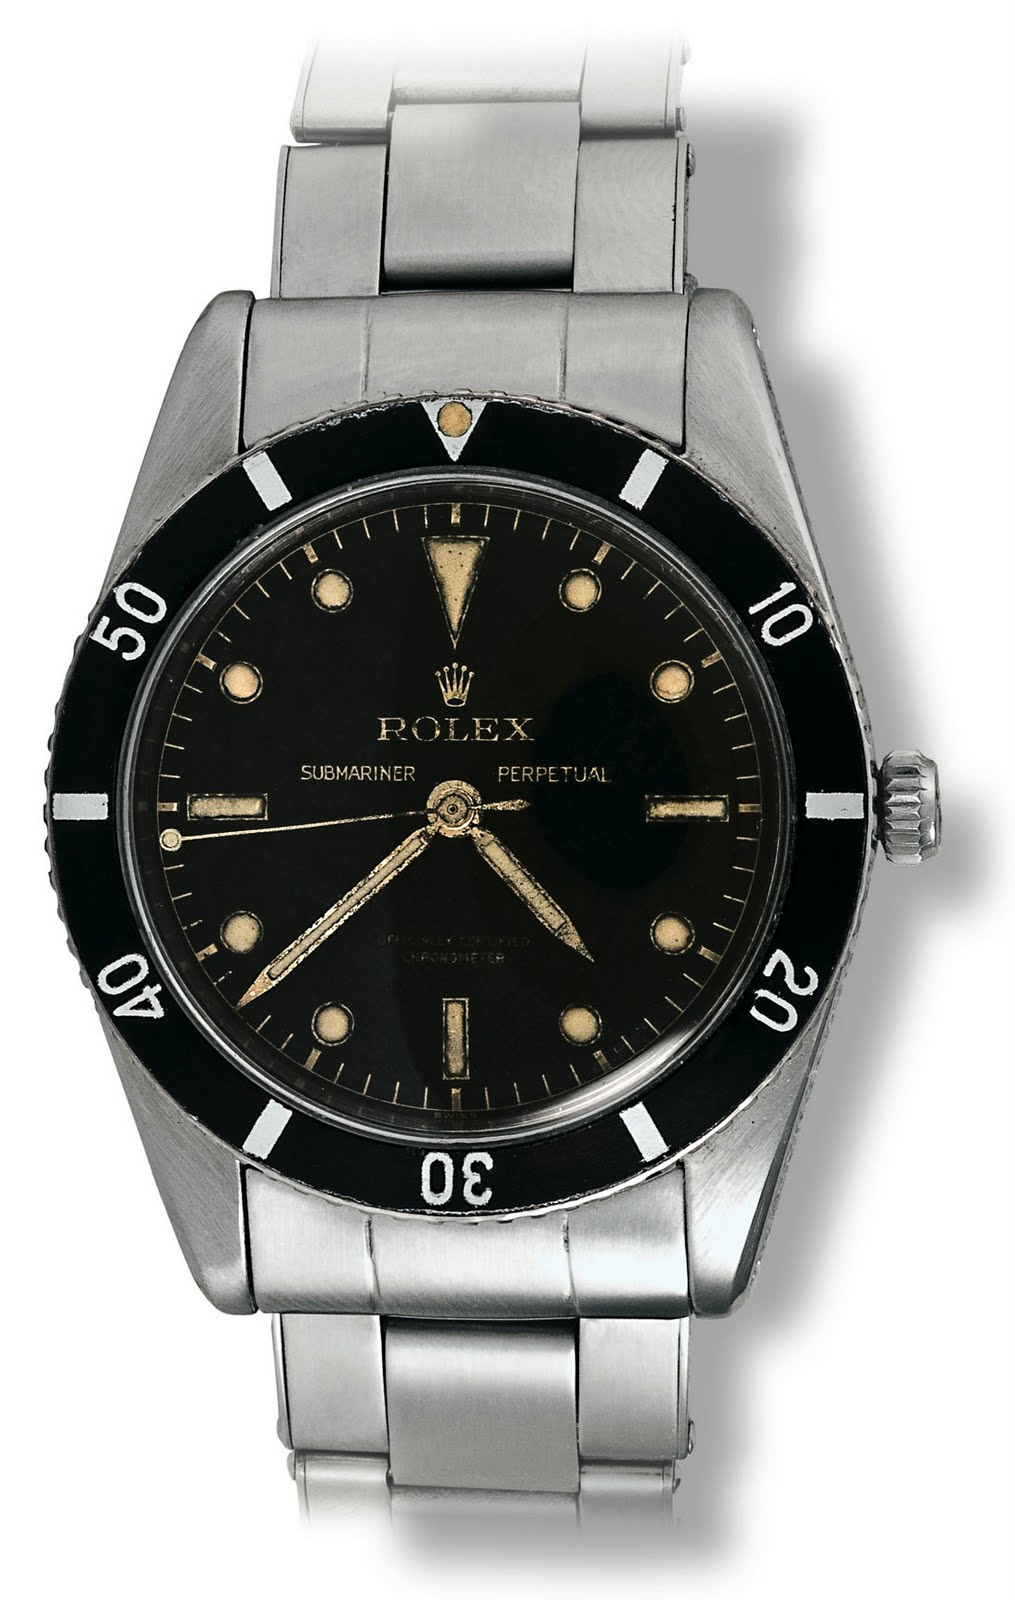 welcome to rolexmagazinecomhome of jakes rolex world